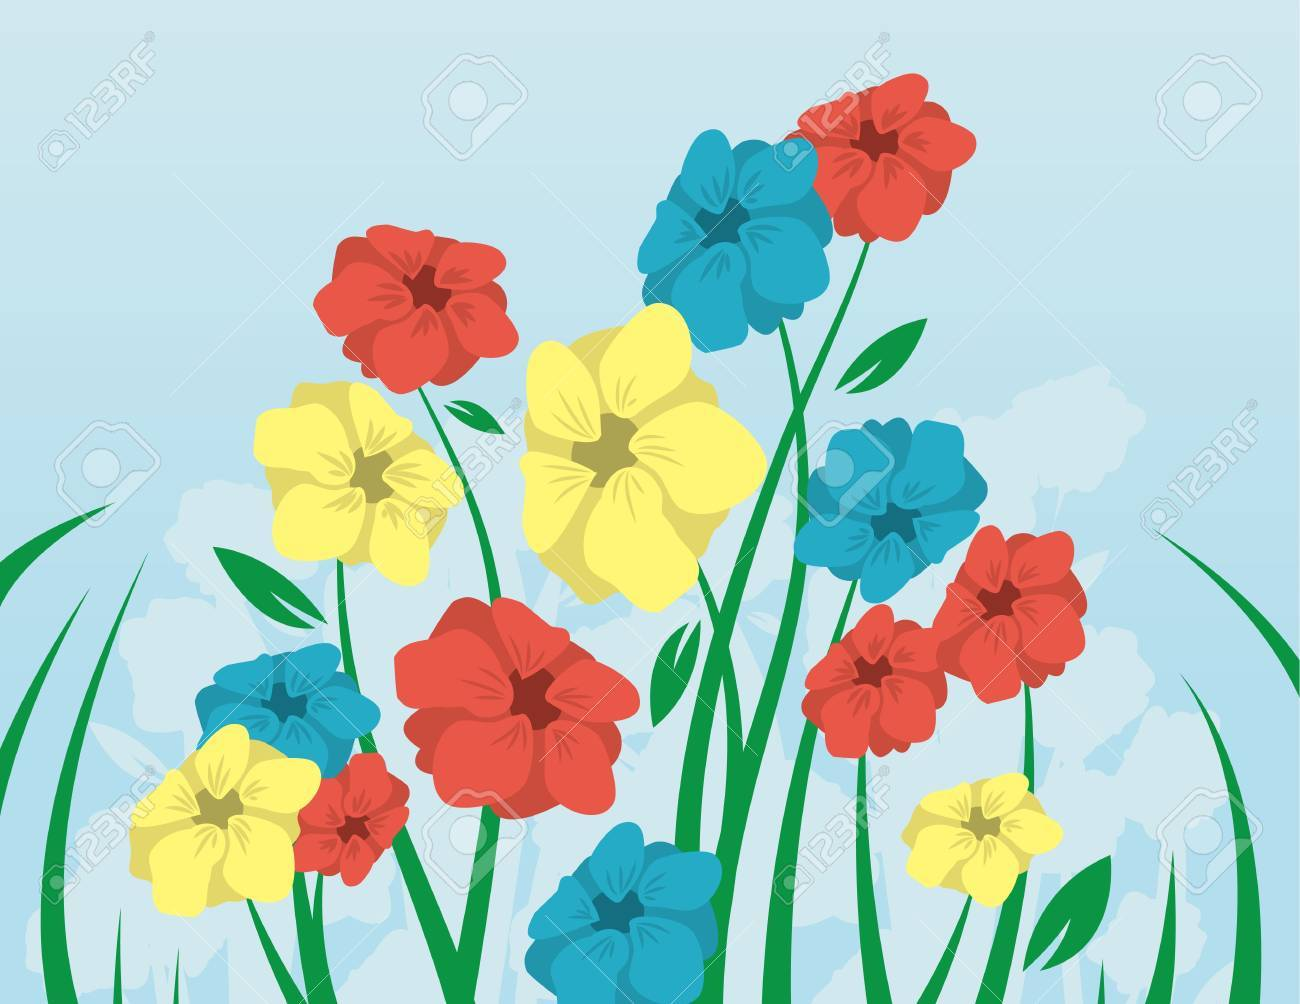 Flowers with long stems coming up from the grass Stock Vector - 12174504